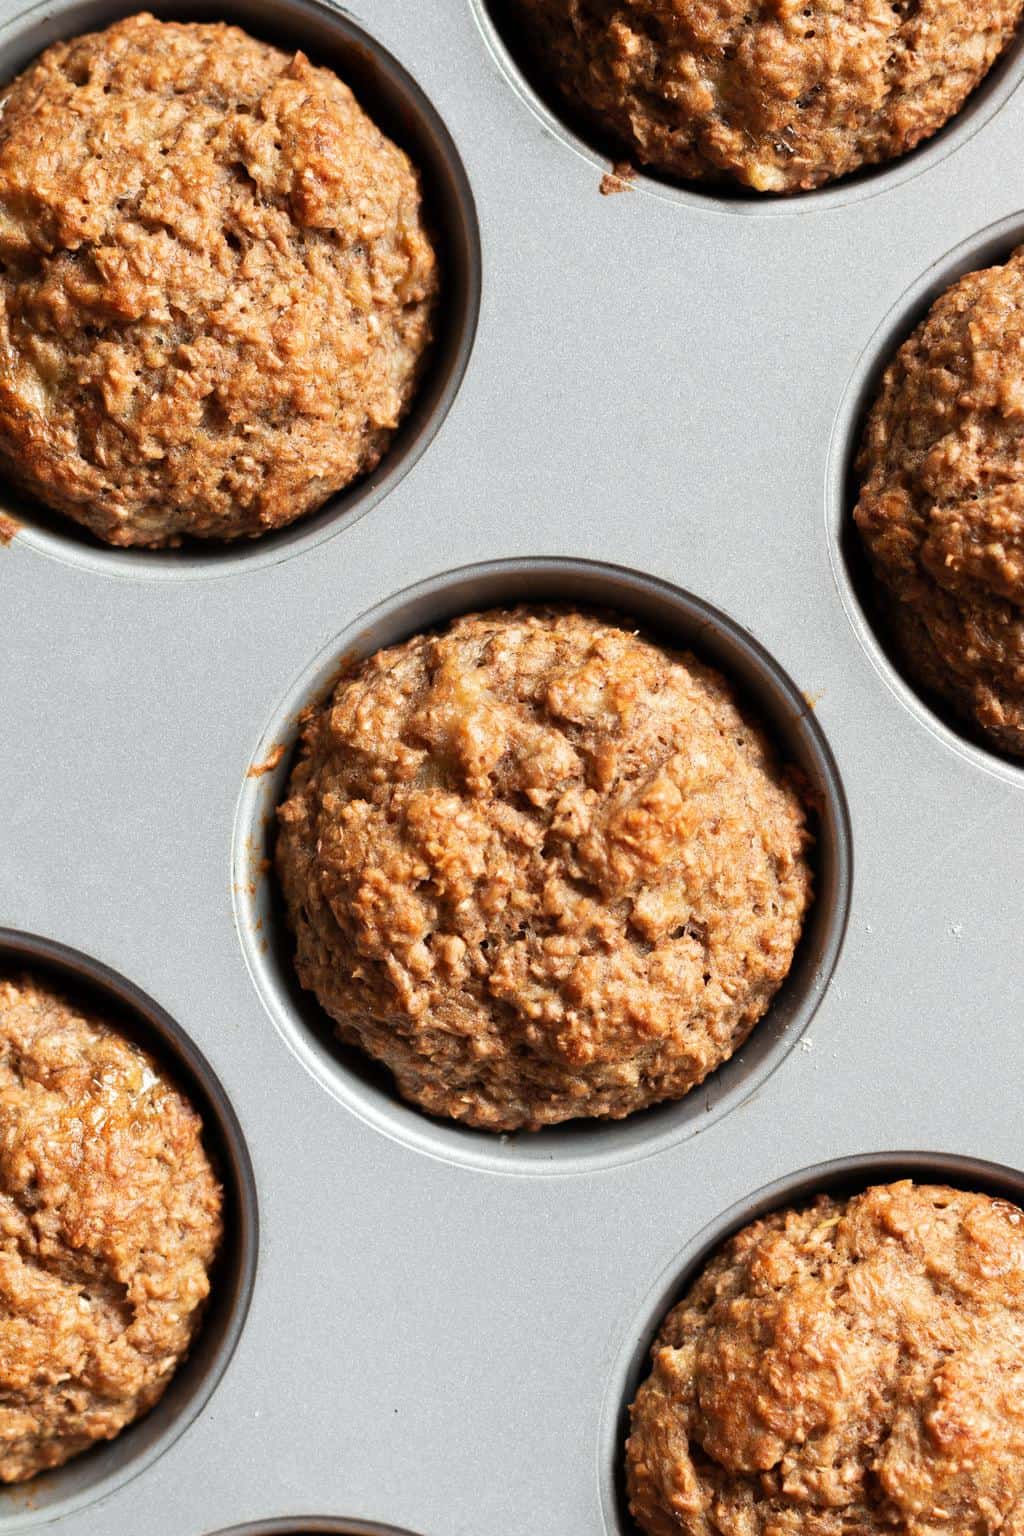 The Healthiest Banana Bran Muffins